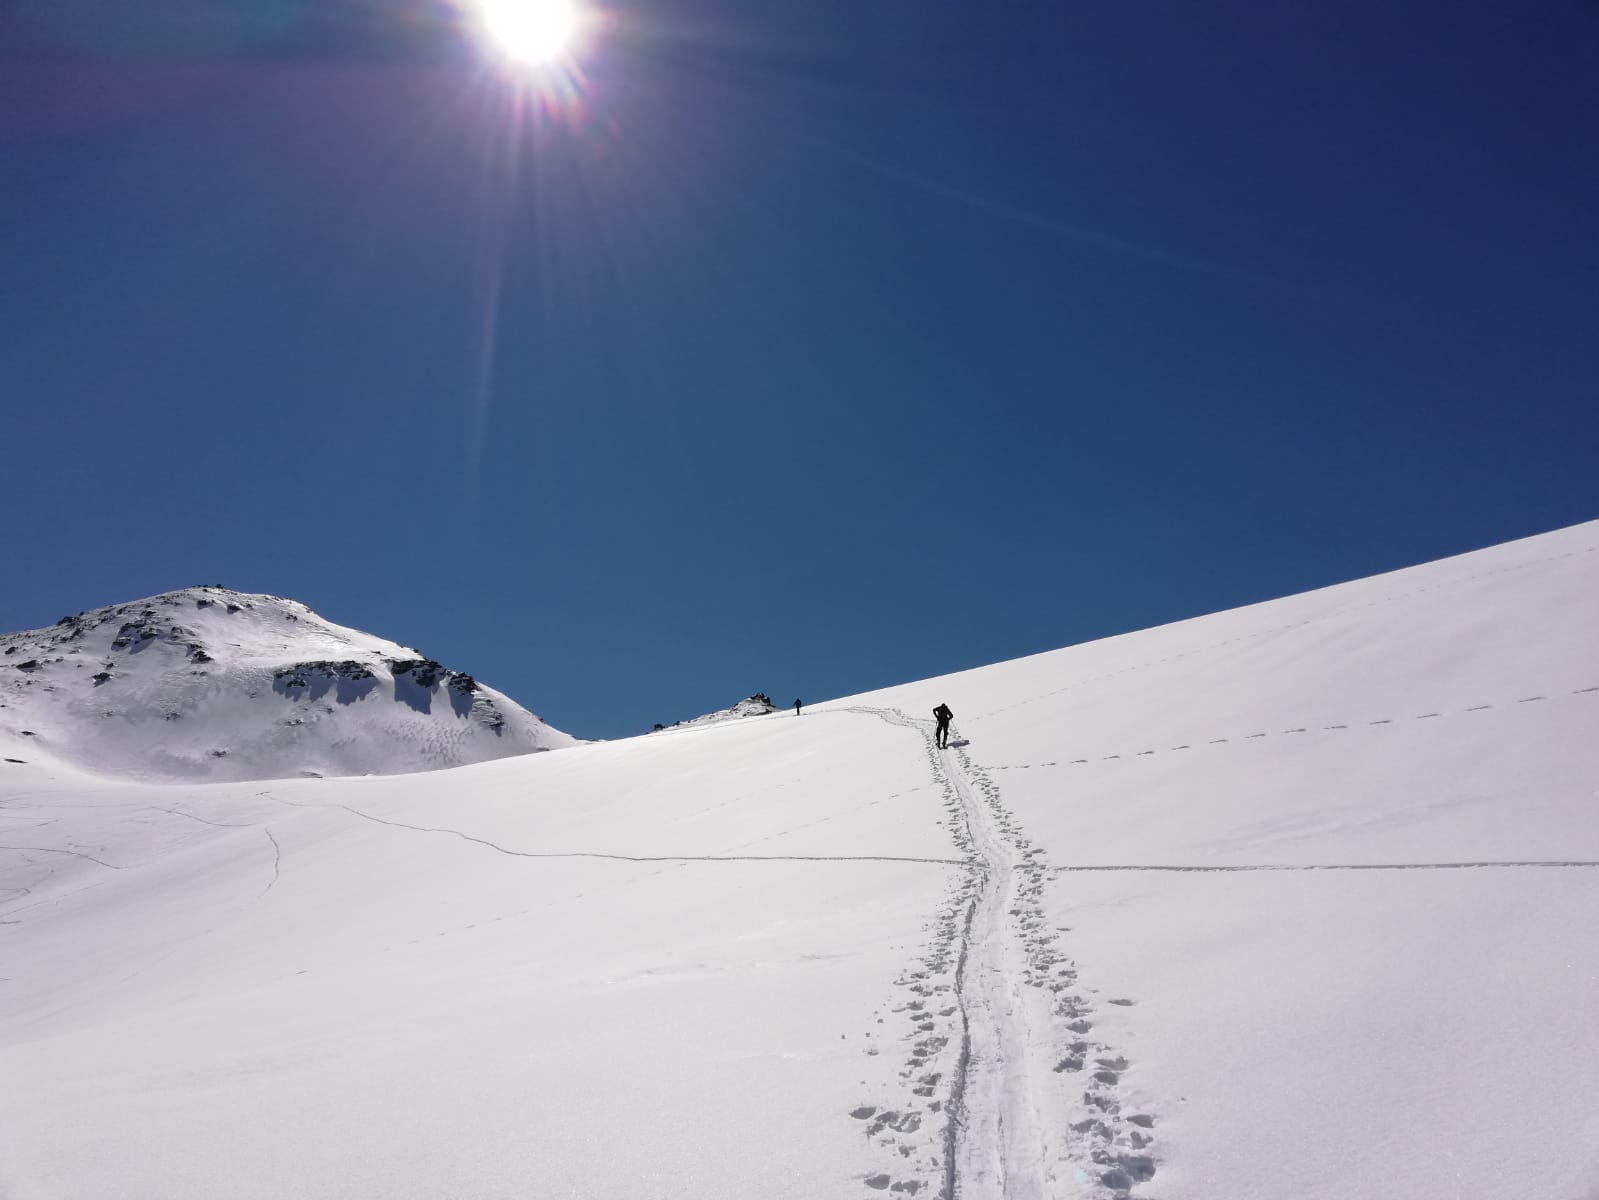 Fresh winter snow - September ski touring in NZ